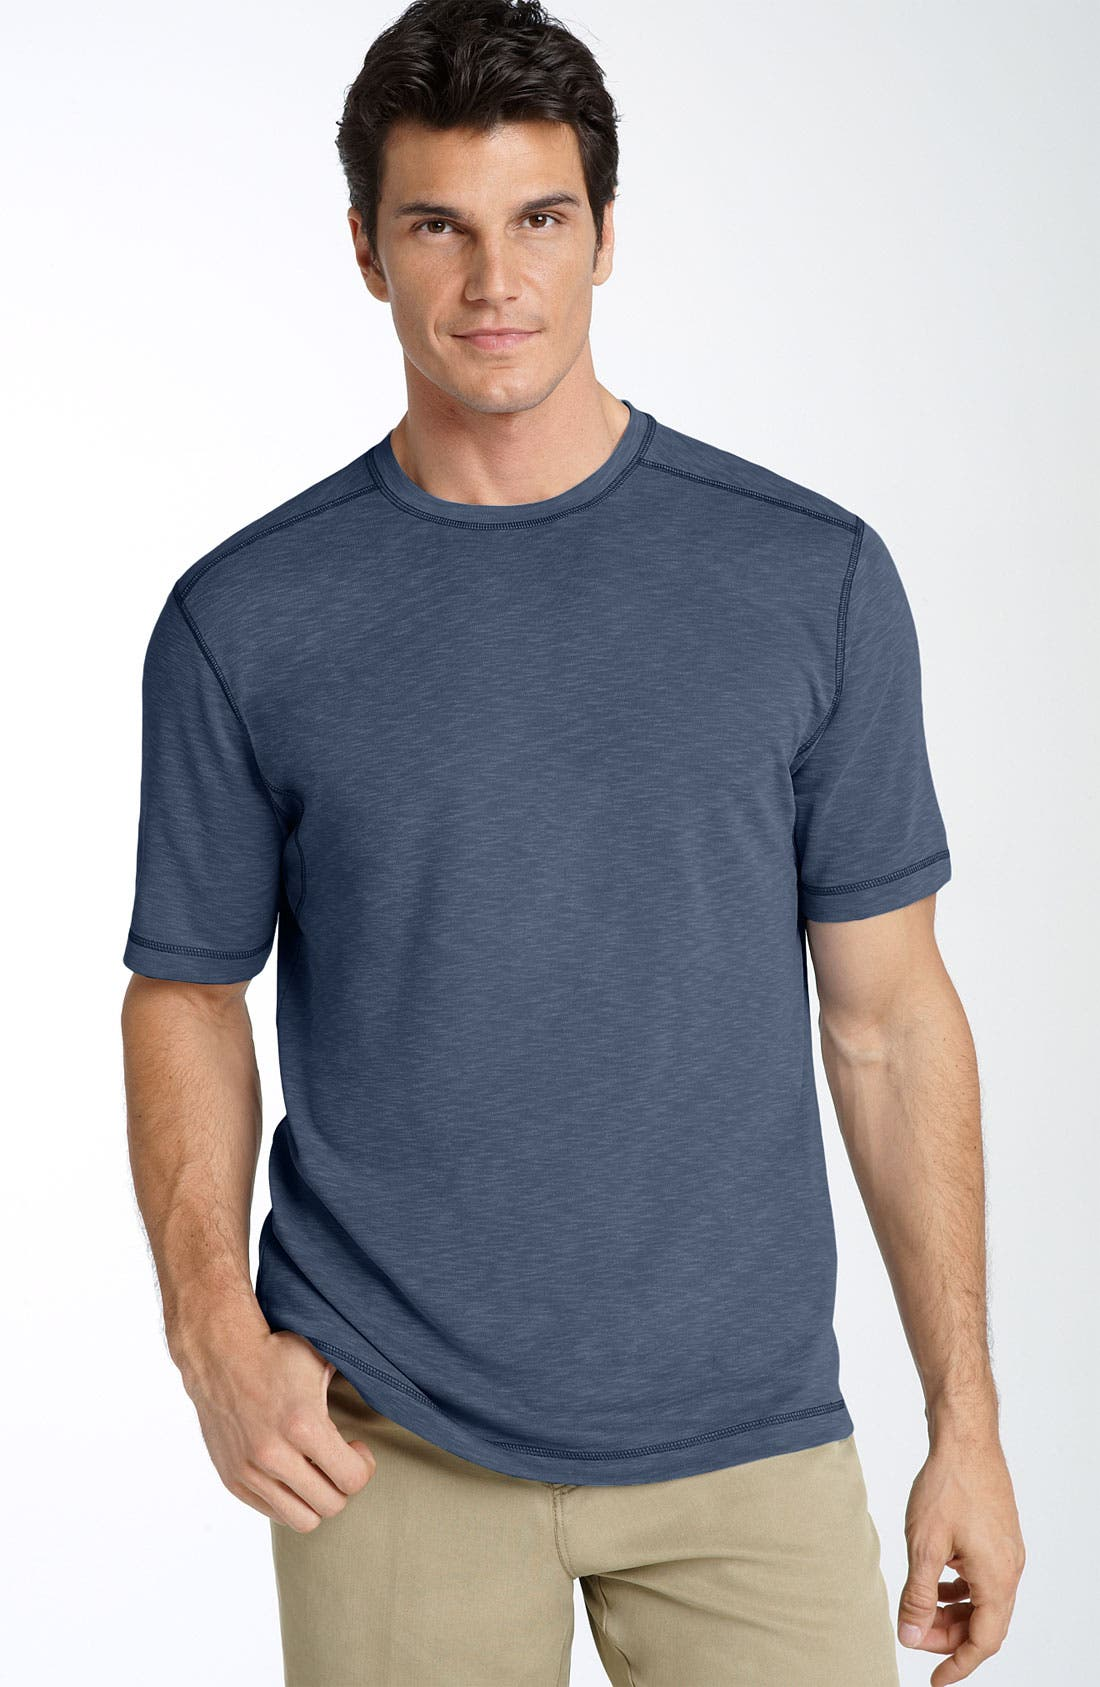 Alternate Image 1 Selected - Tommy Bahama 'Paradise Blend' Crewneck T-Shirt